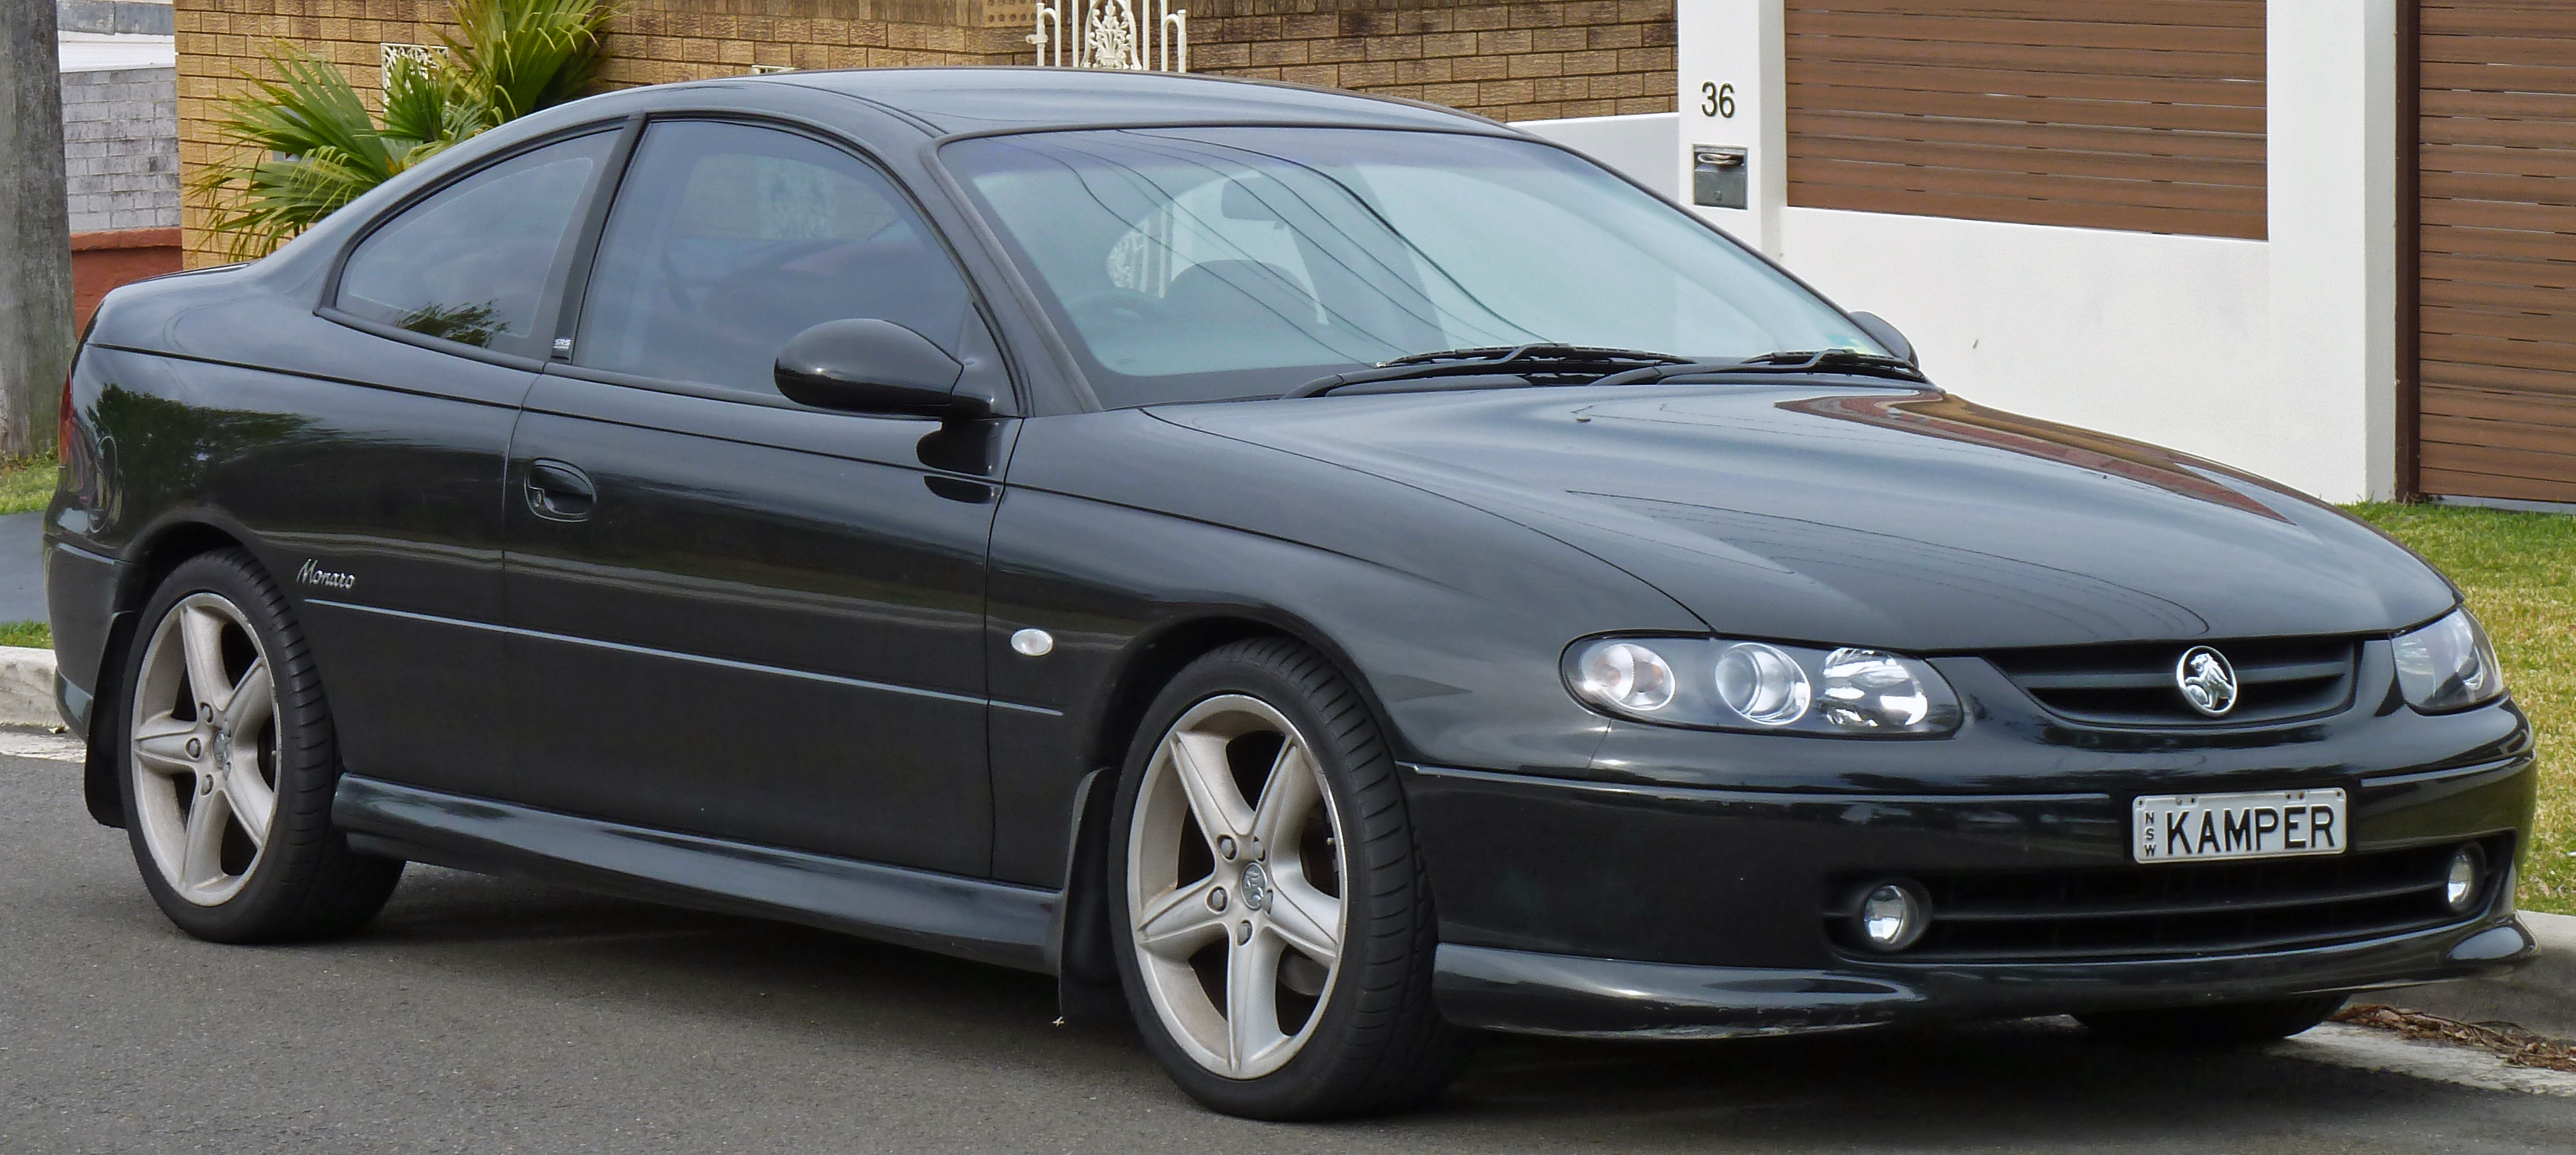 Holden coupe photo - 2